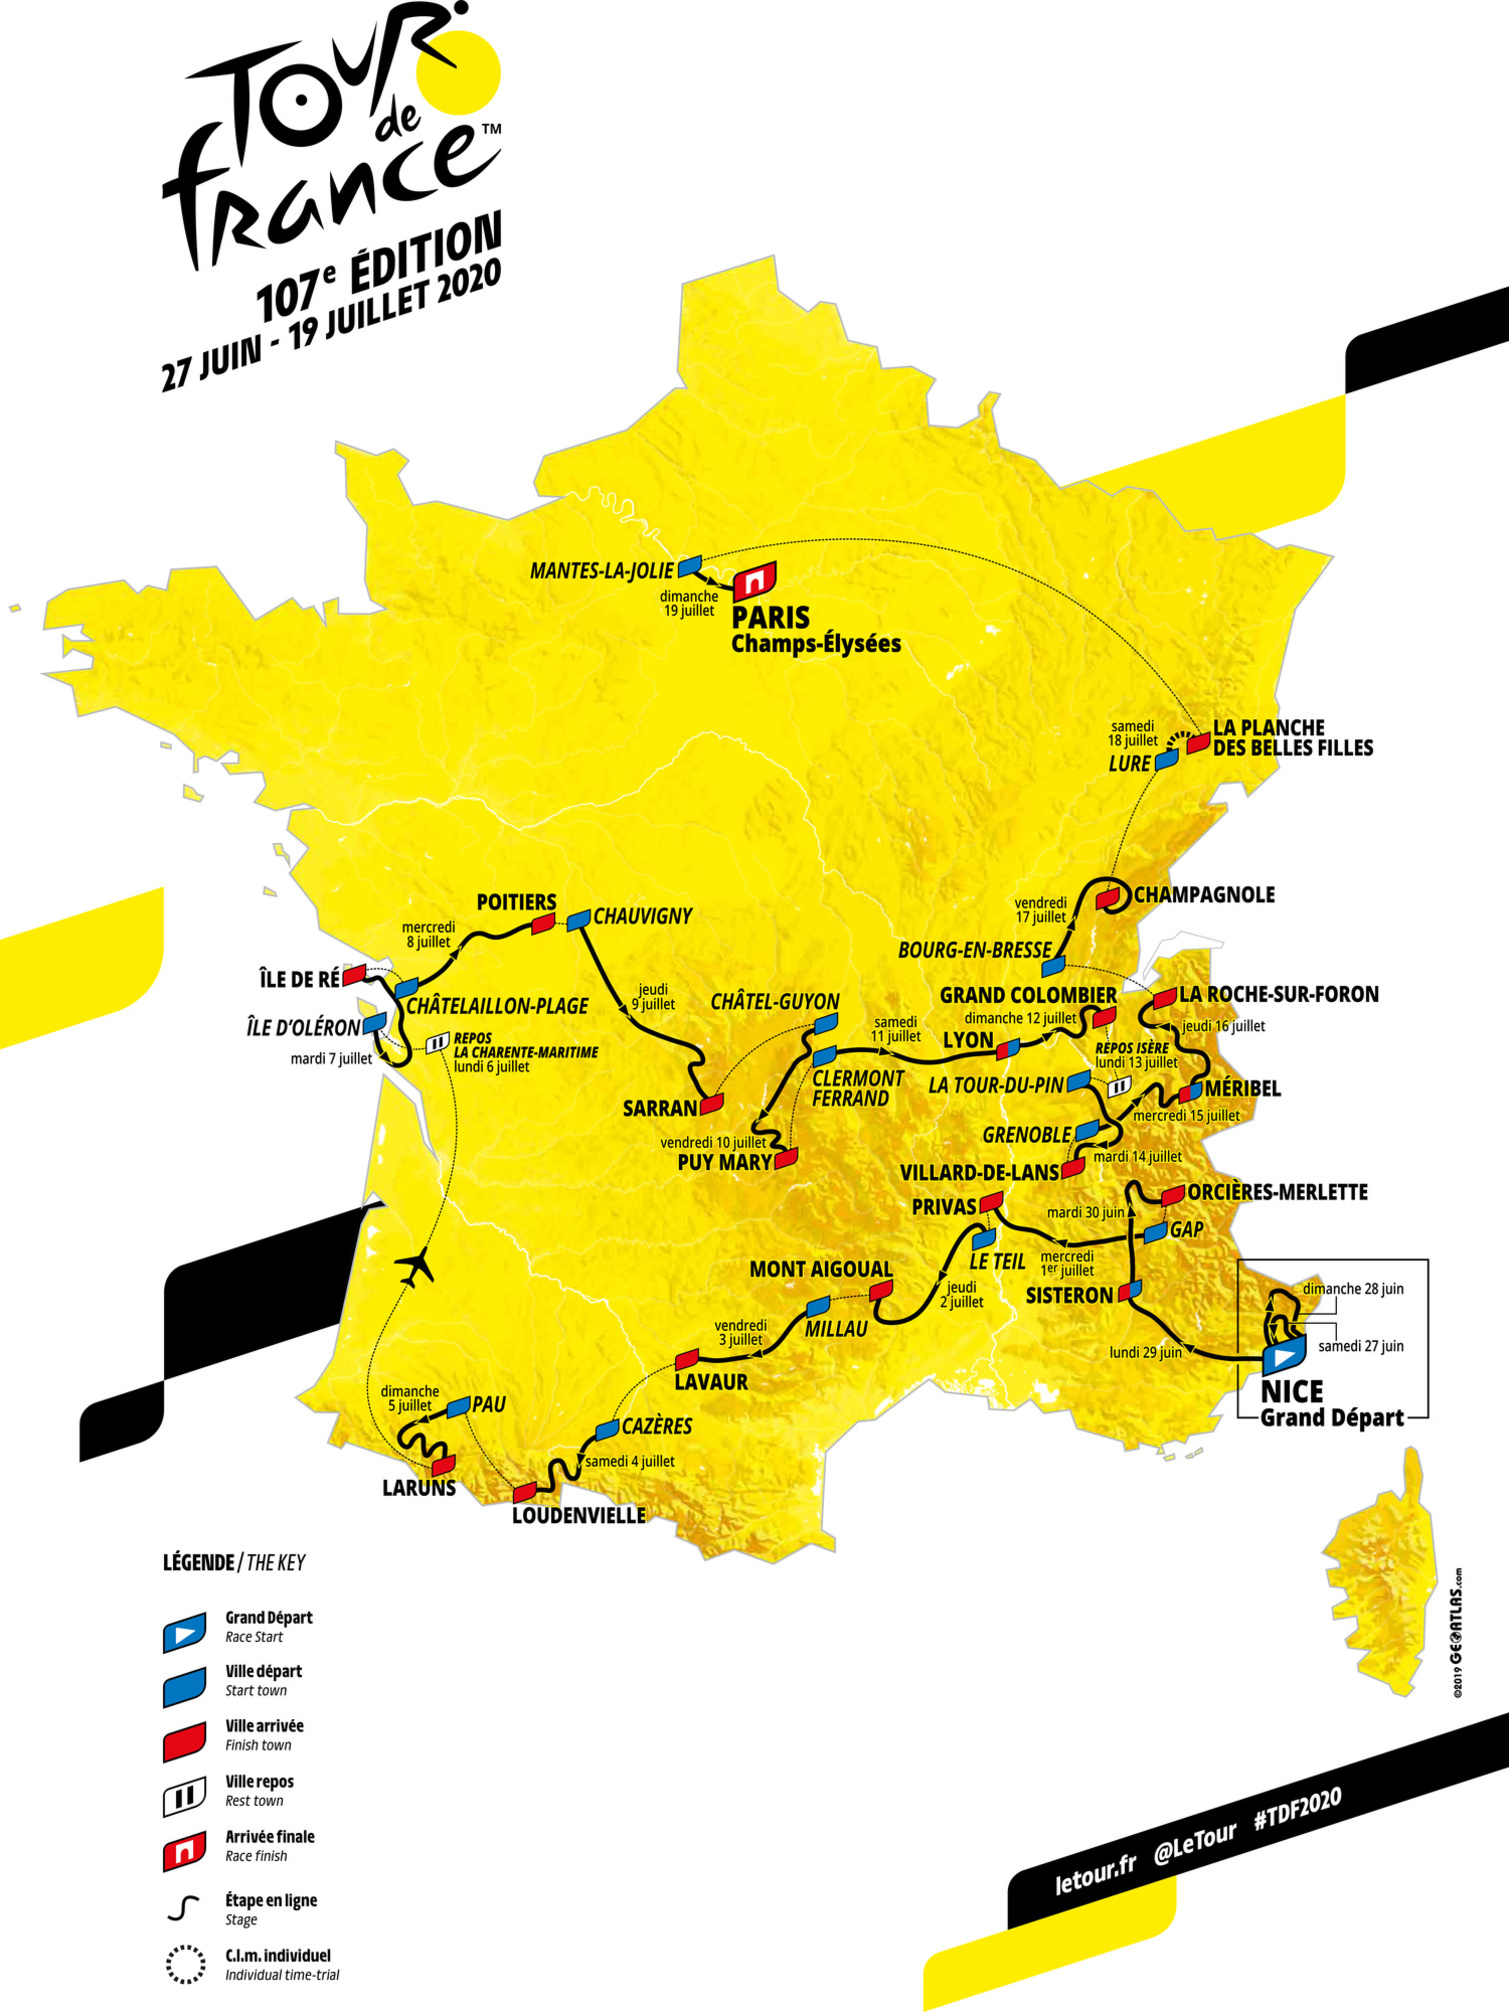 Tour de France 2020, Belga Image